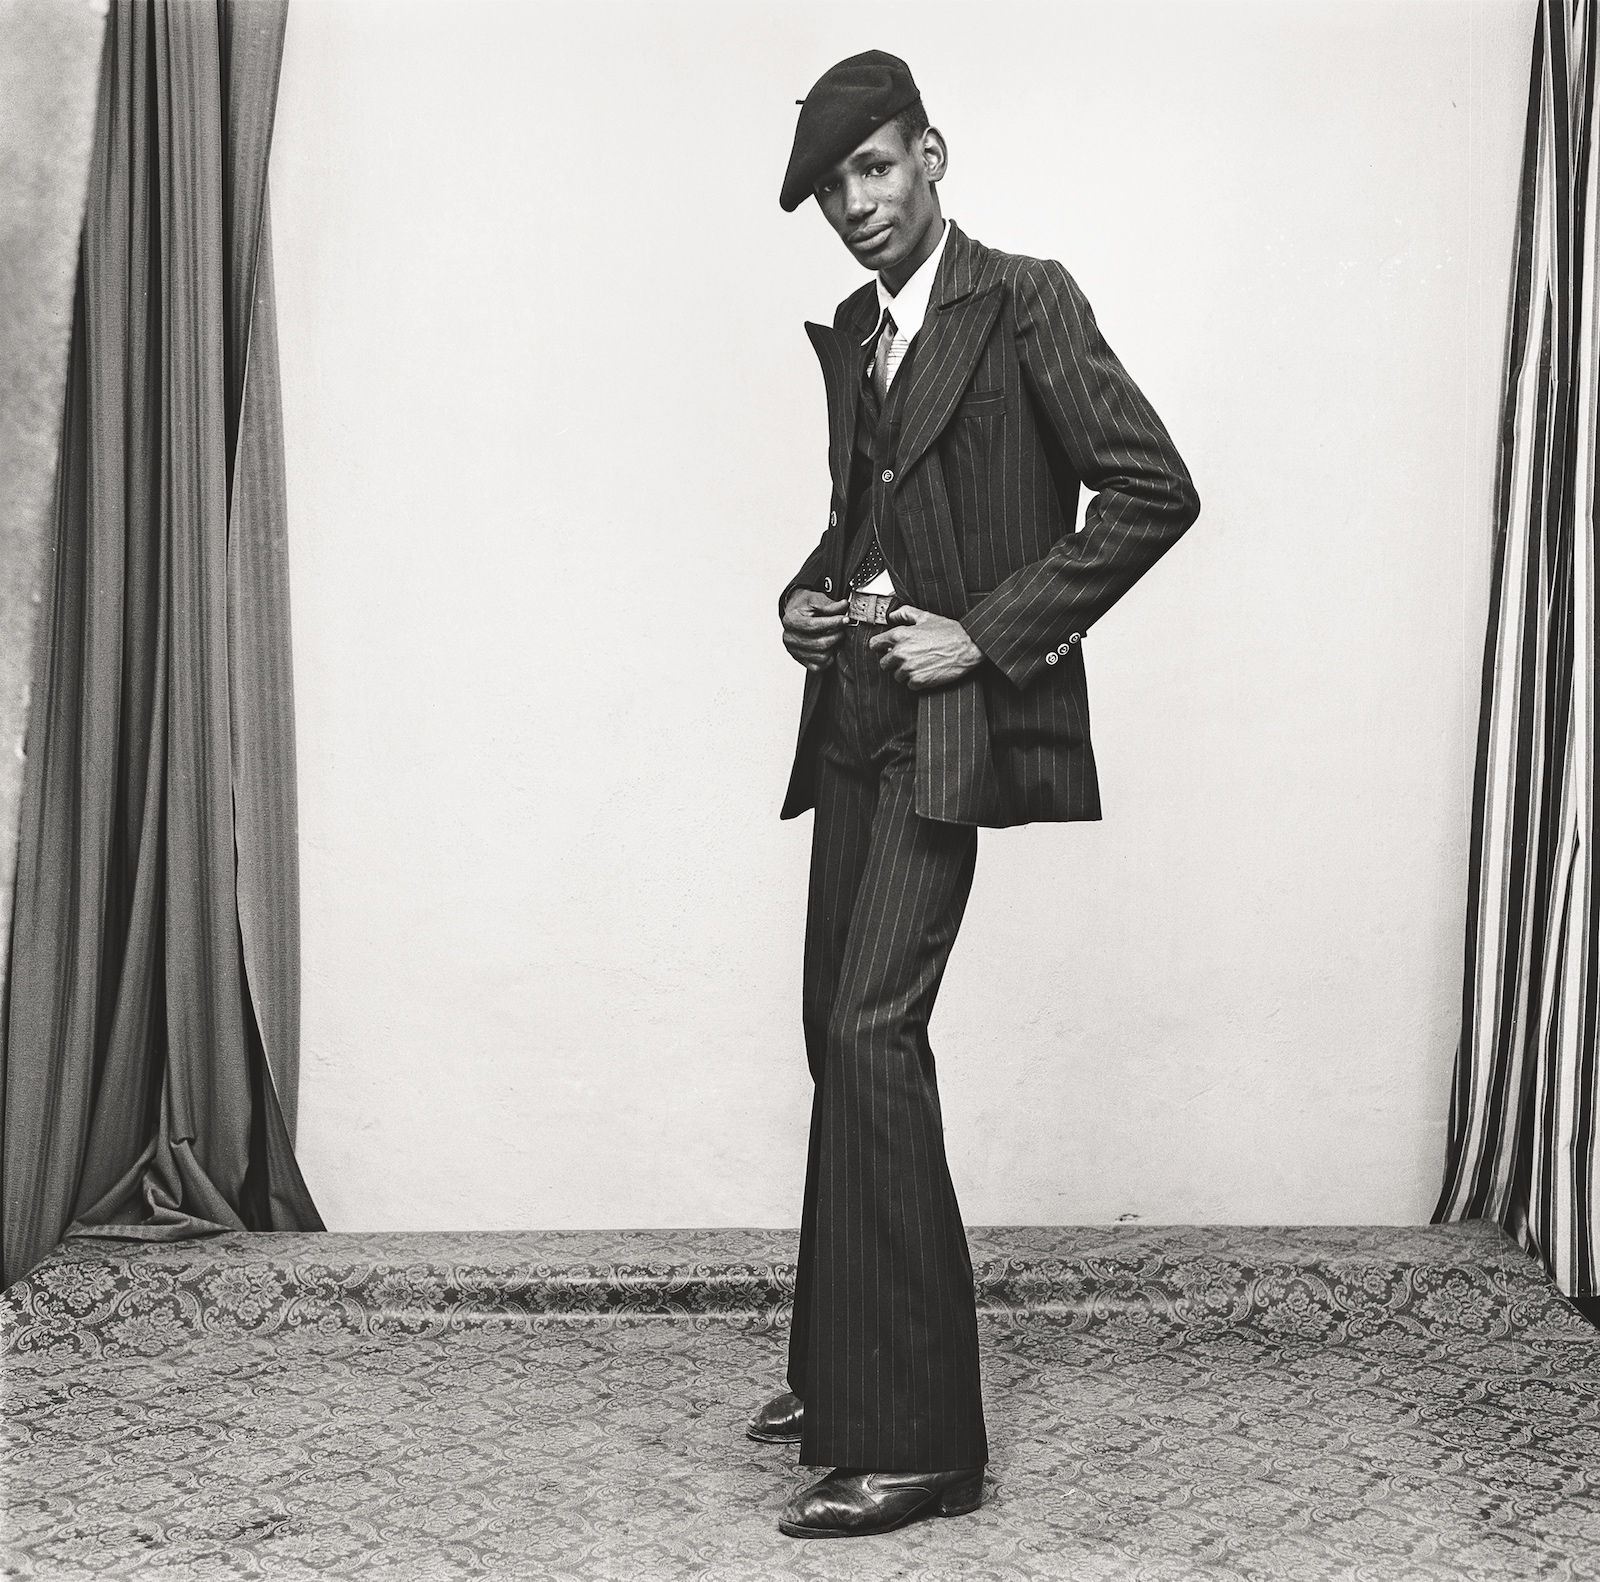 Un gentleman en position, 1980. Collection Fondation Cartier pour l'art contemporain, Paris © Malick Sidibé Extract from Mali Twist (Éditions Xavier Barral, Fondation Cartier pour l'art contemporain, 2017)